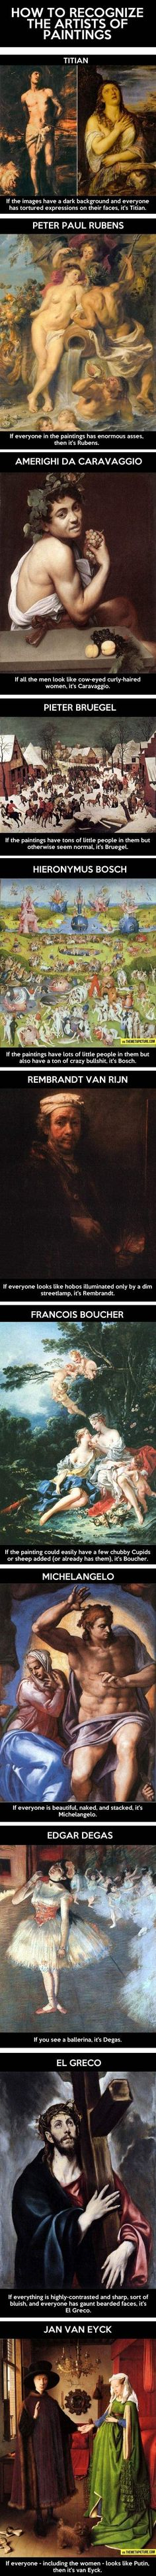 Art nerds will enjoy this one. The last one especially made me LOL.